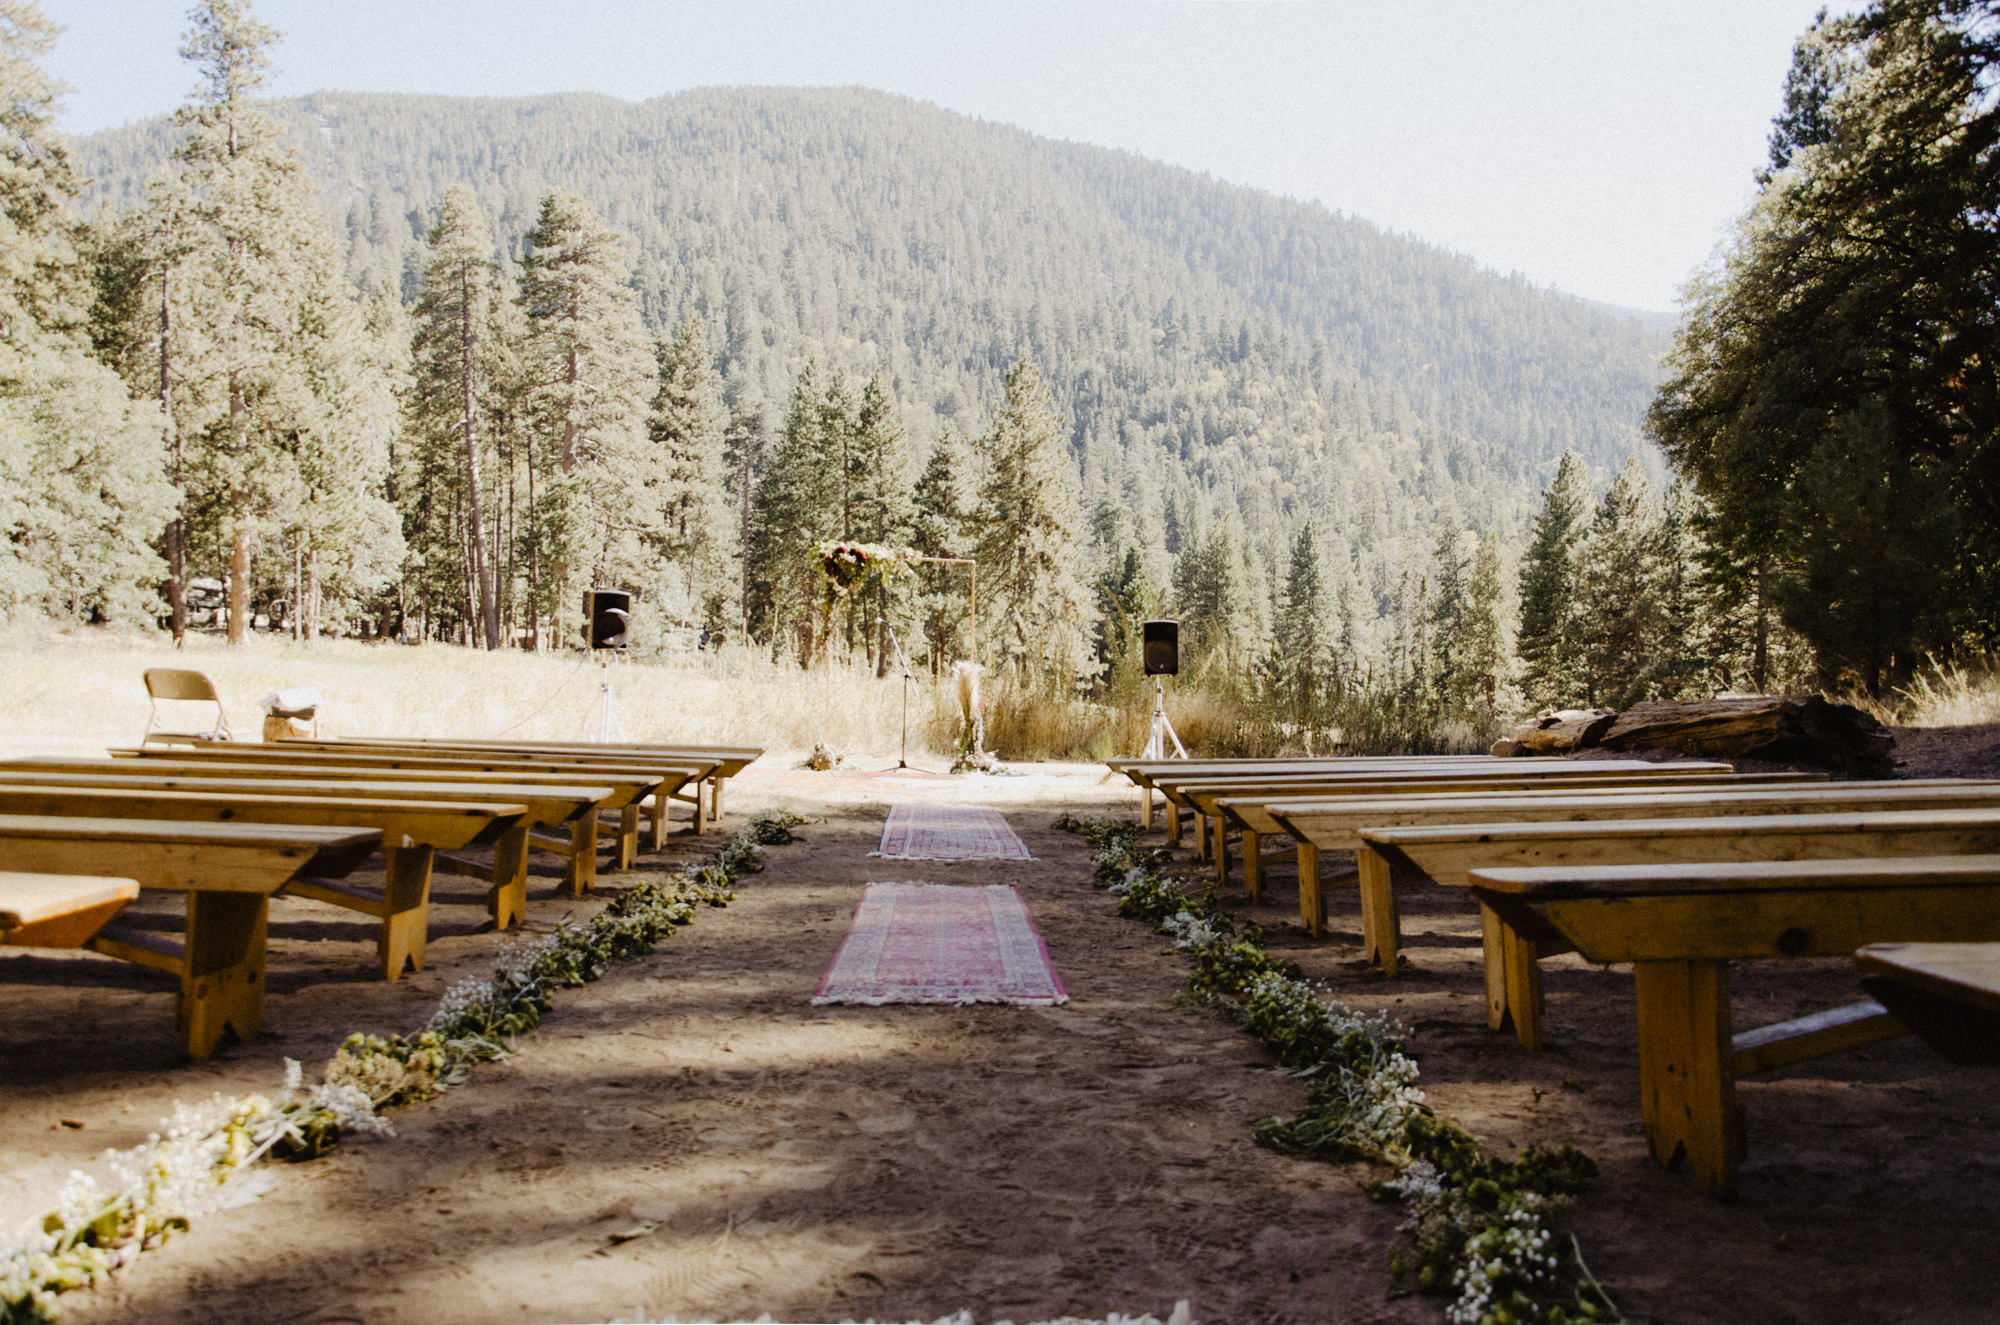 YMCA camp round meadow wedding -51.jpg